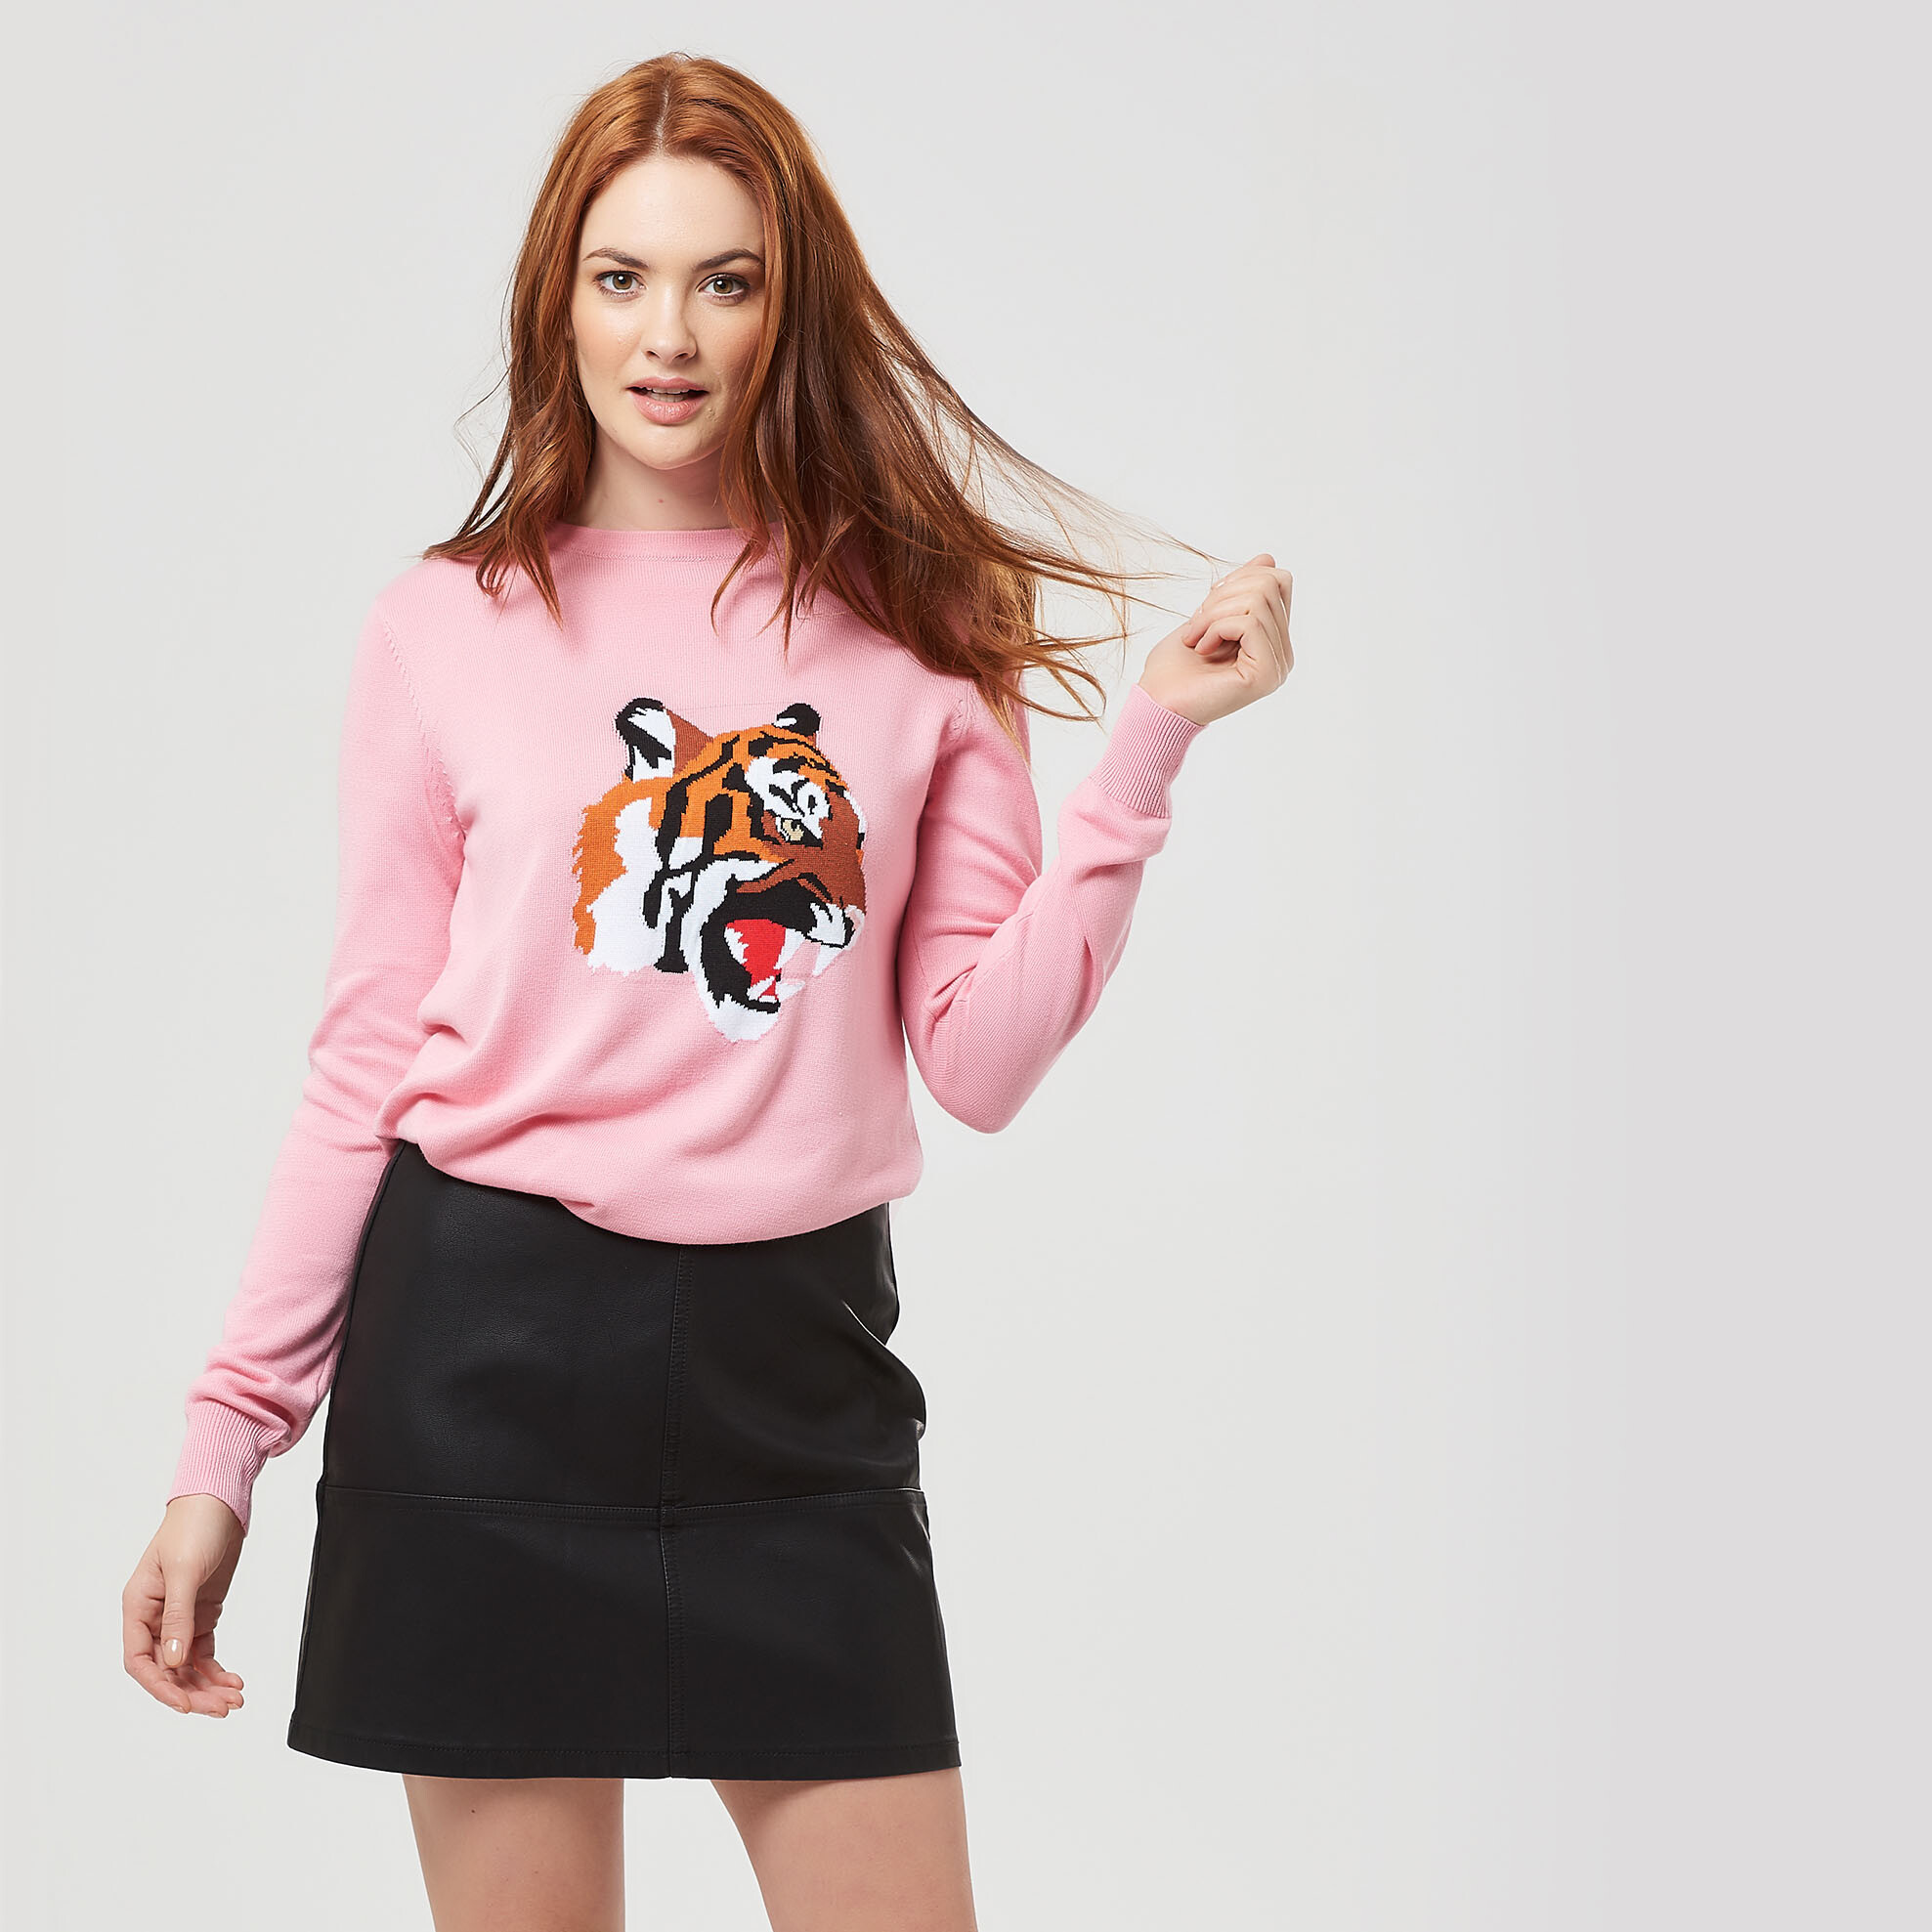 Pink tiger jumper and leather skirt outfit